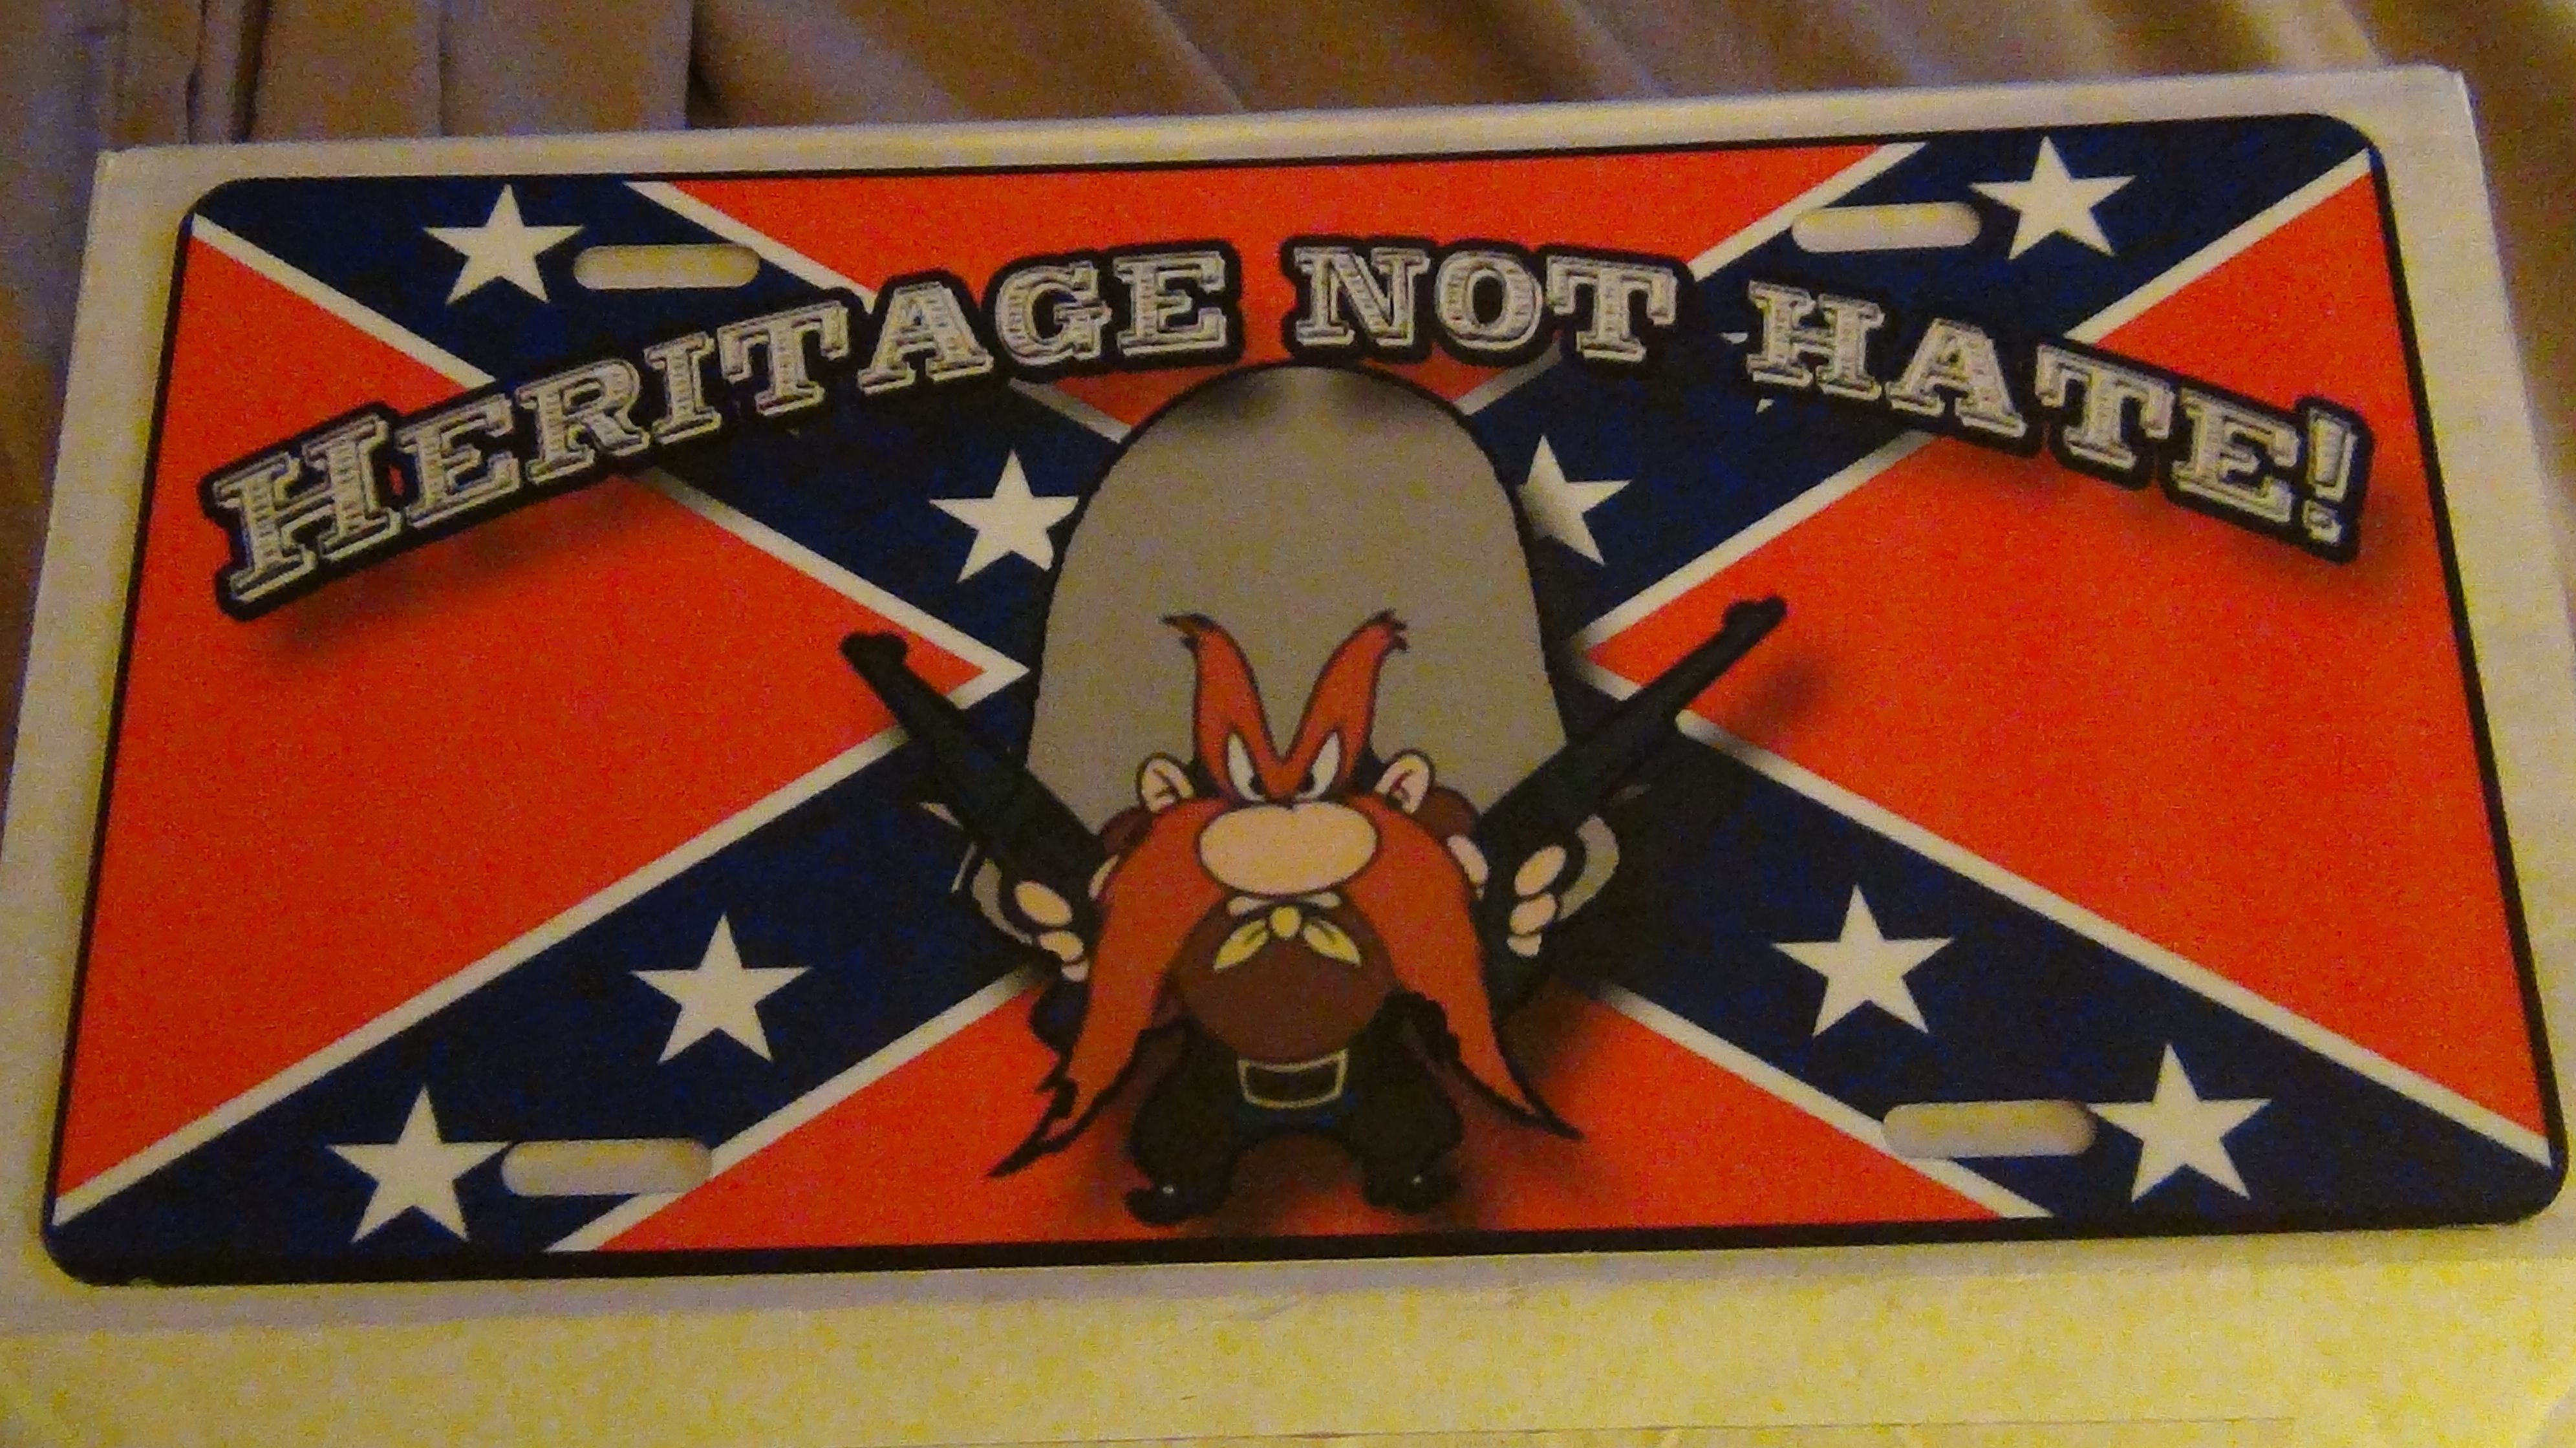 Heritage not Hate!